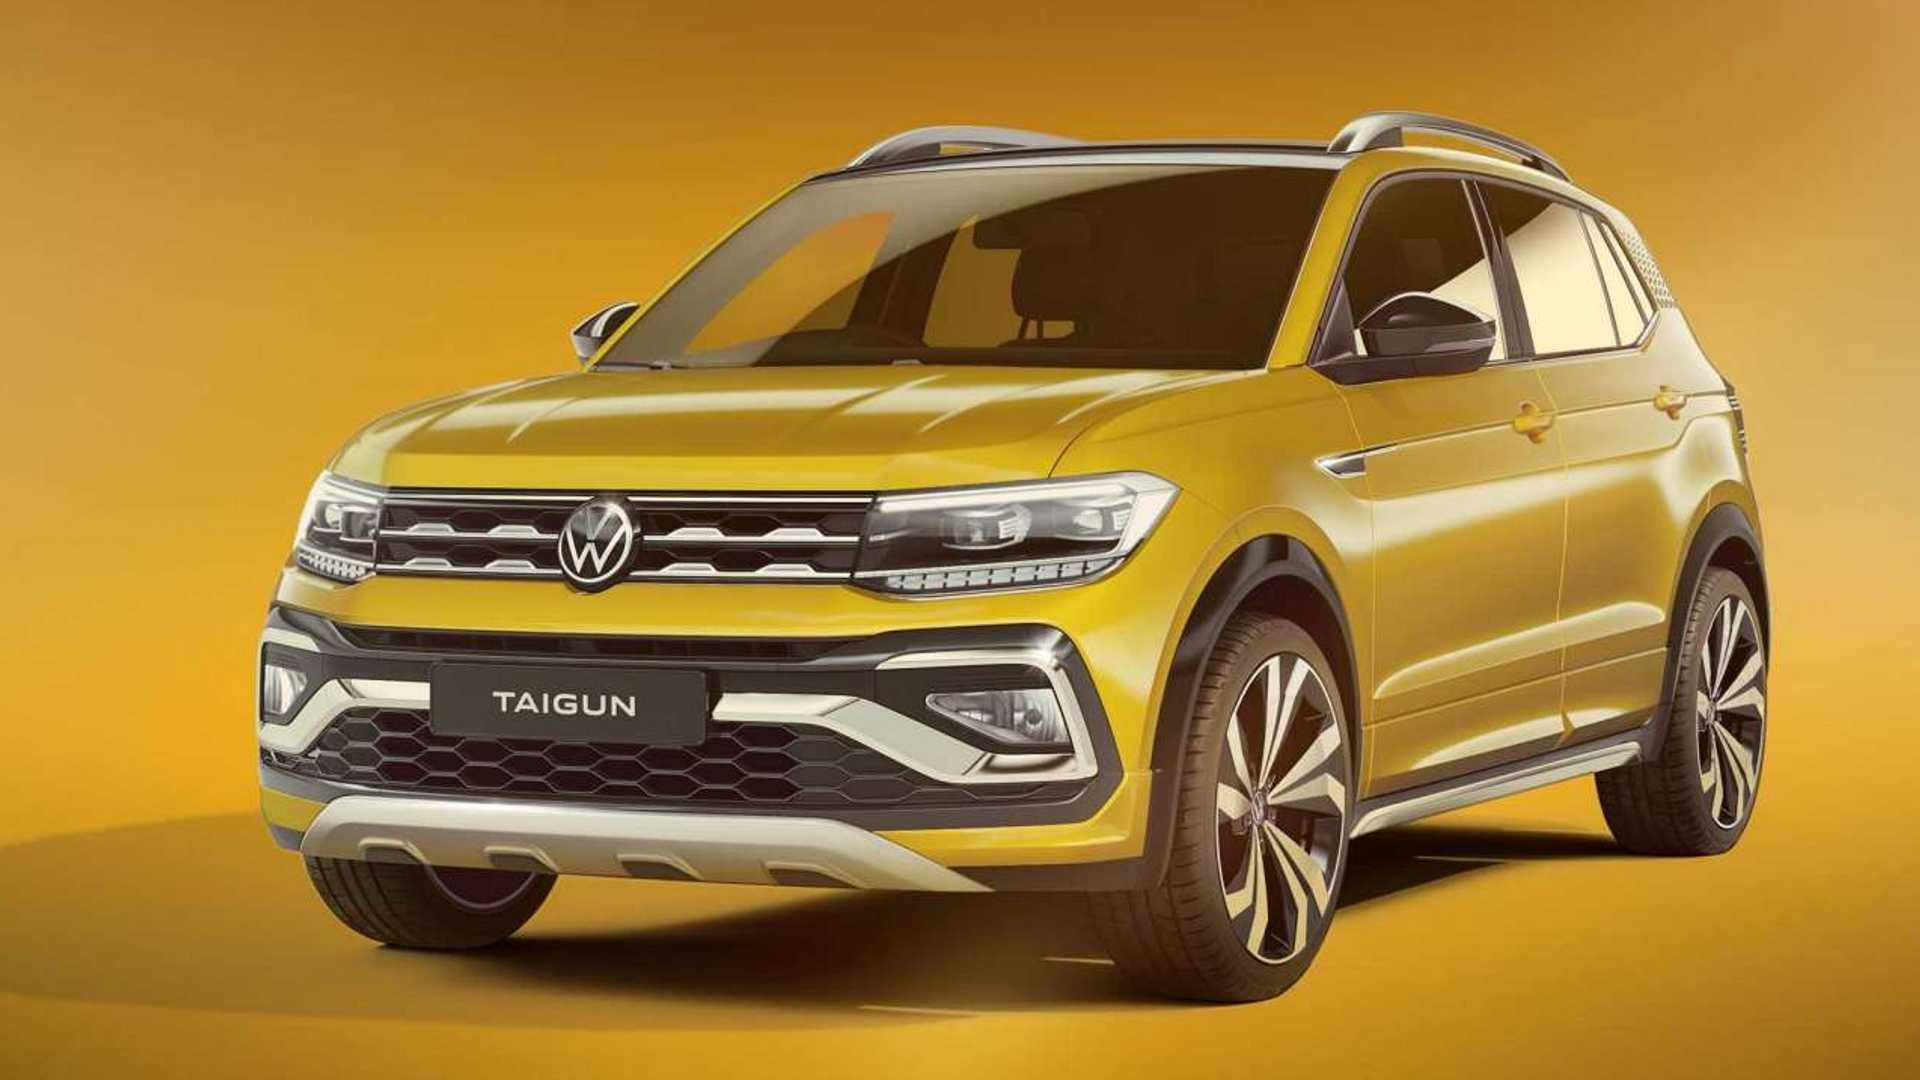 Volkswagen_Taigun_India_0003